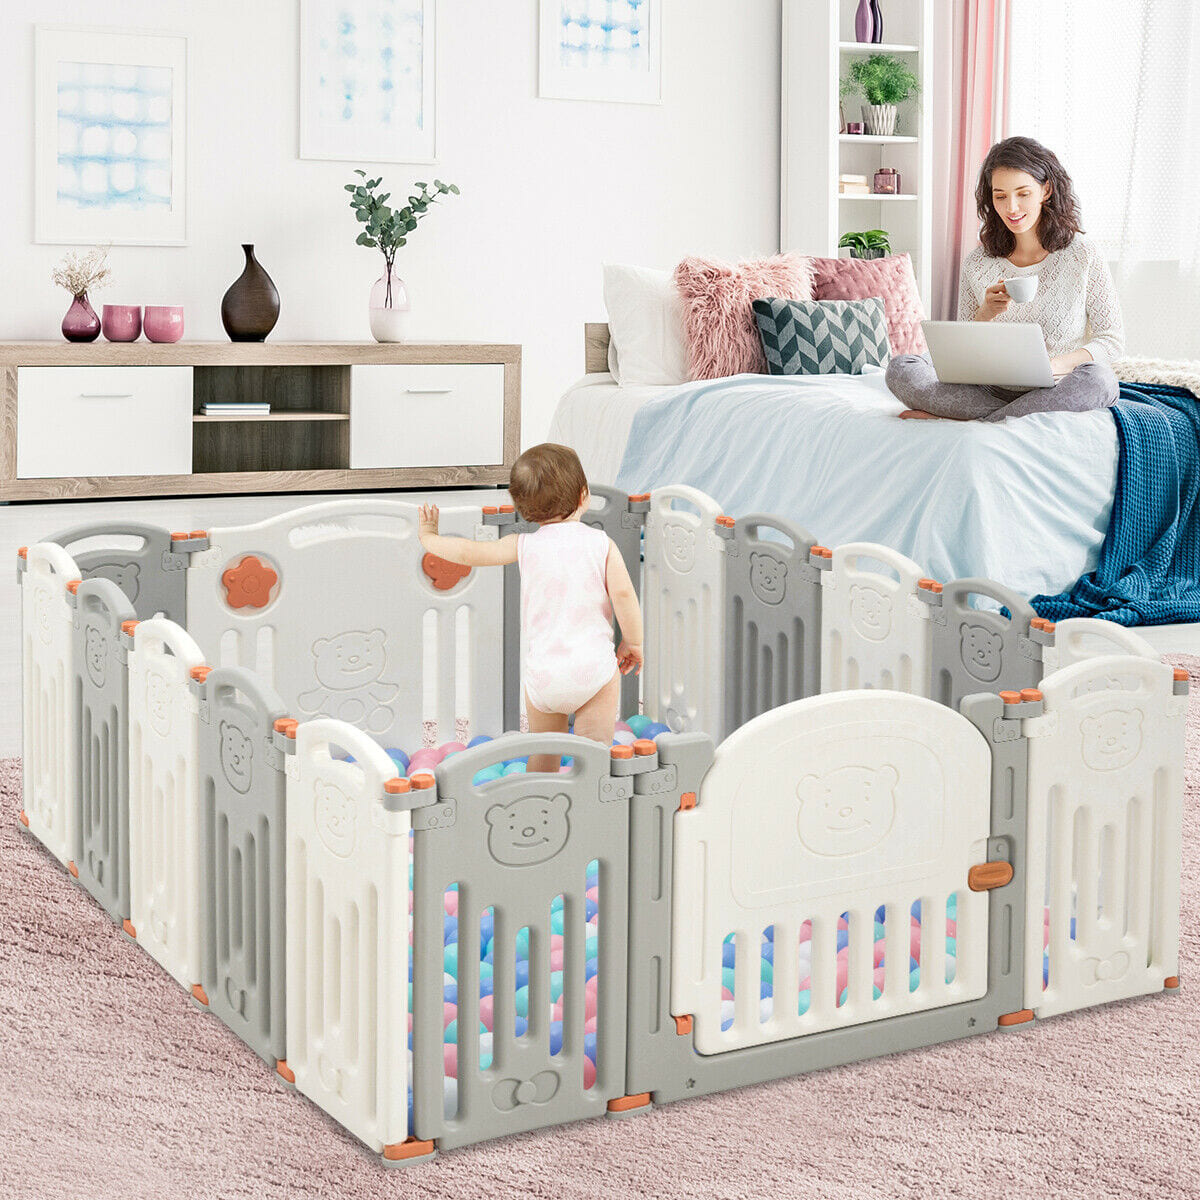 16 Panel Activity Safety Baby Playpen w/ Lock Door Beige - FREE SHIPPING